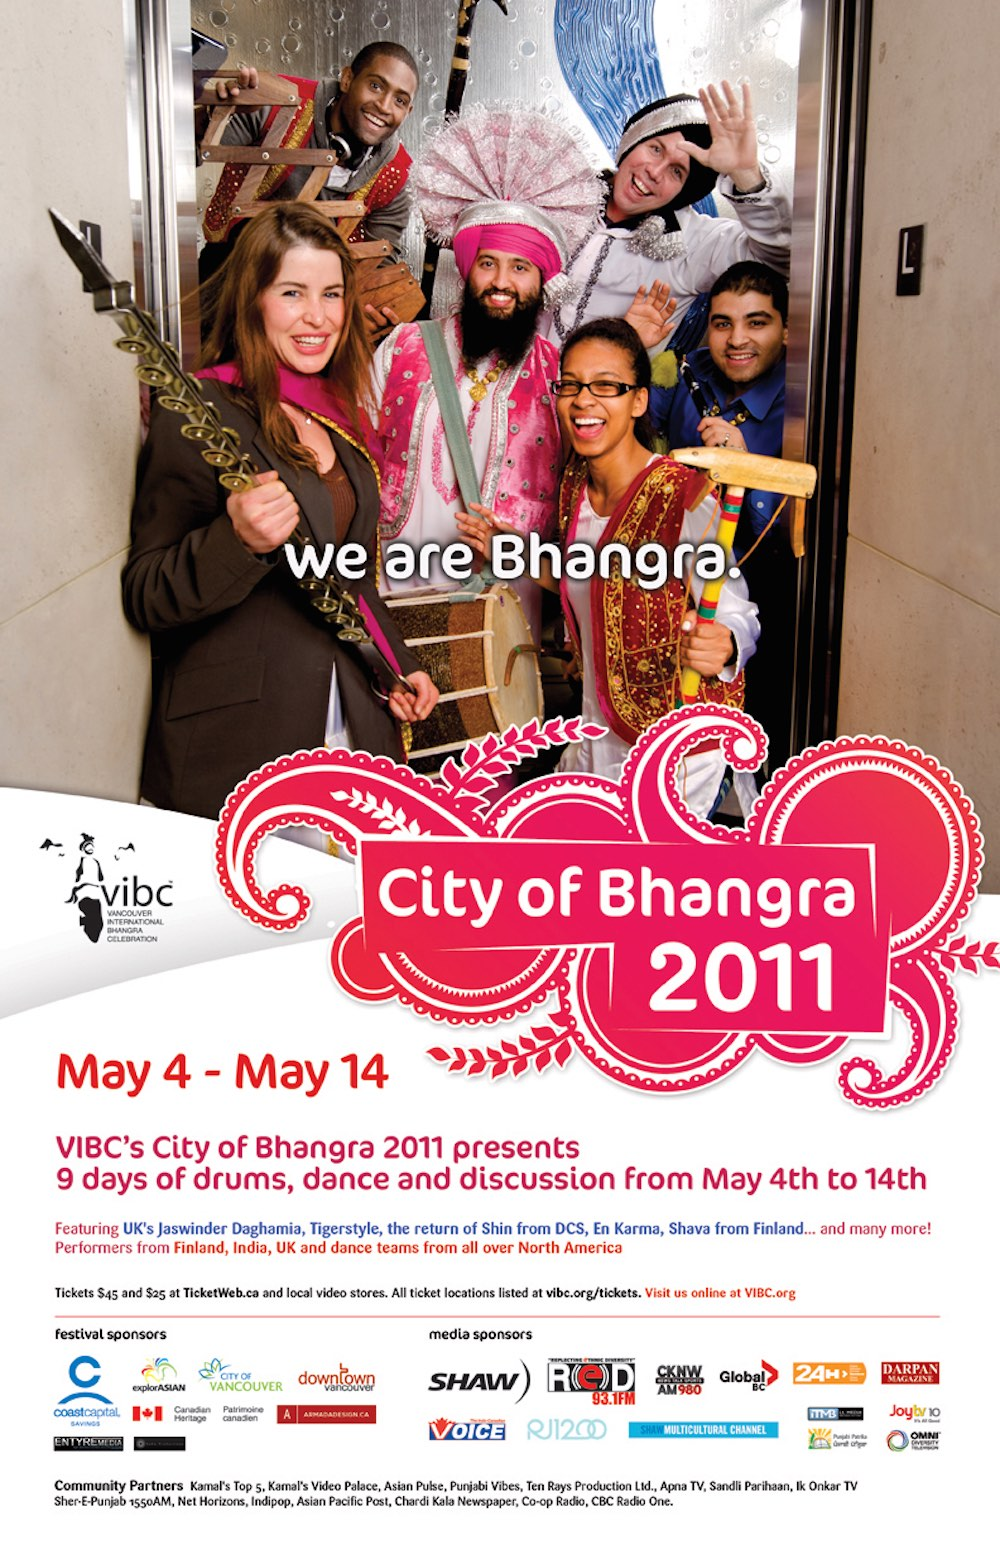 vibc_city_of_bhangra_2011_poster.jpg